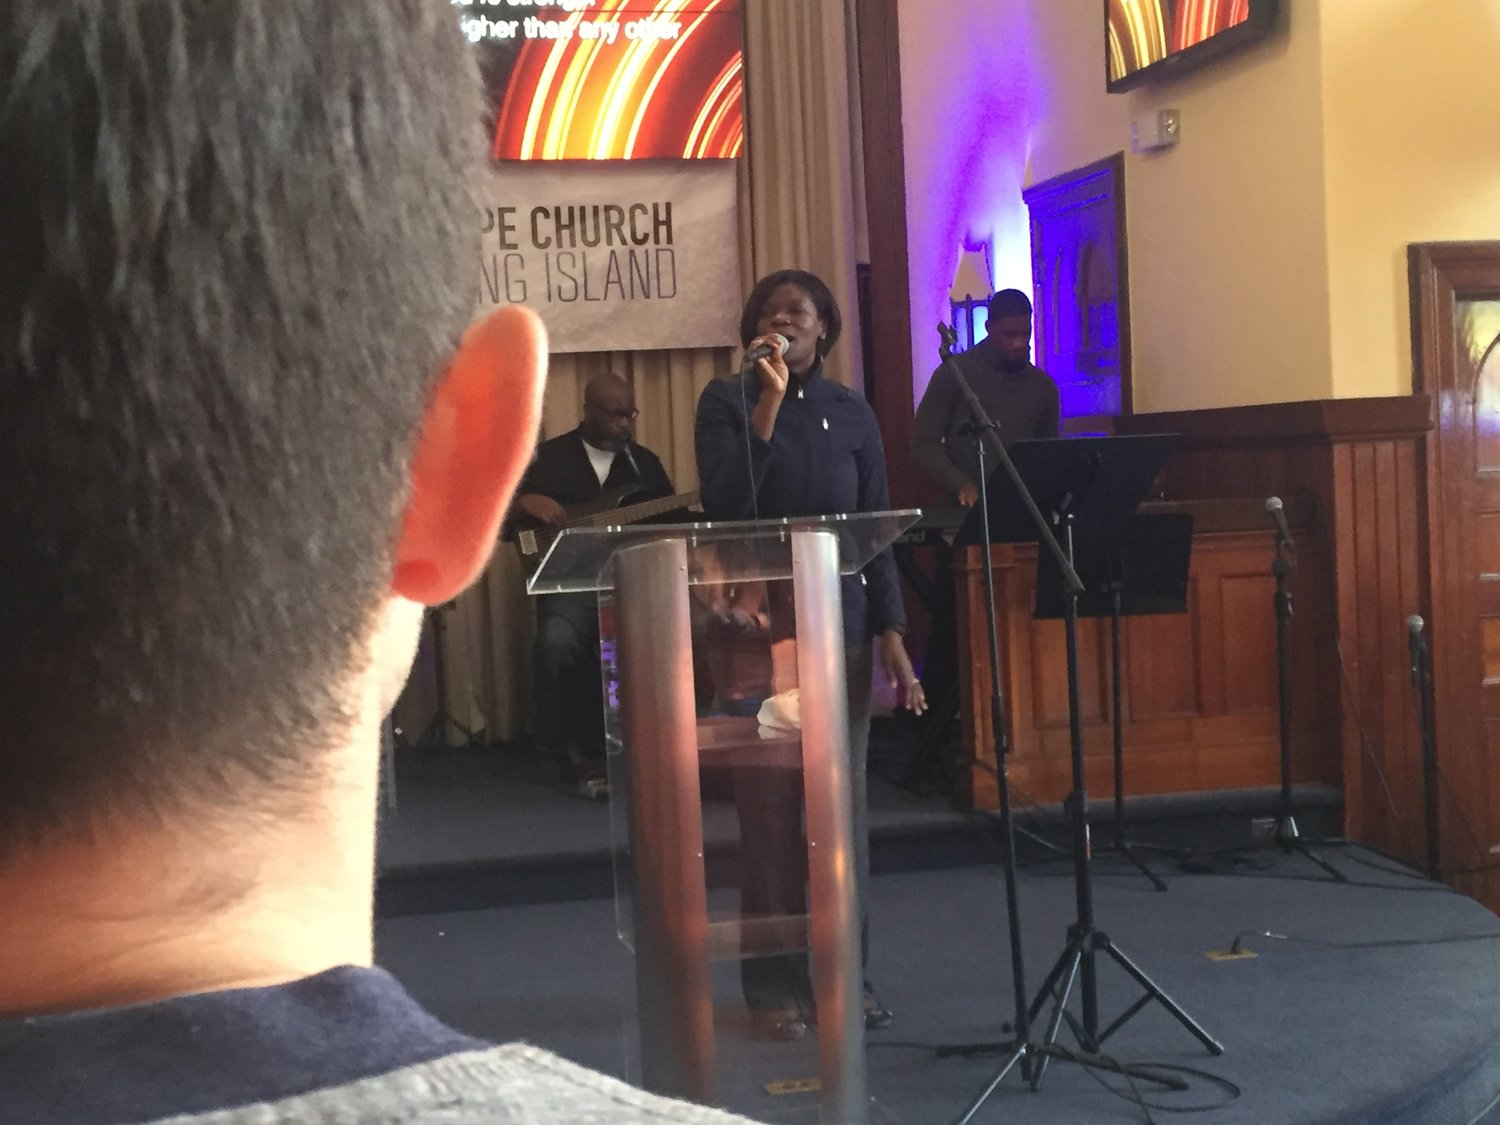 Jack Cimorelli, foreground, one of many Hofstra students who attend Hope Church, followed the lead of Worship Leader Rachel Pierre during the service.